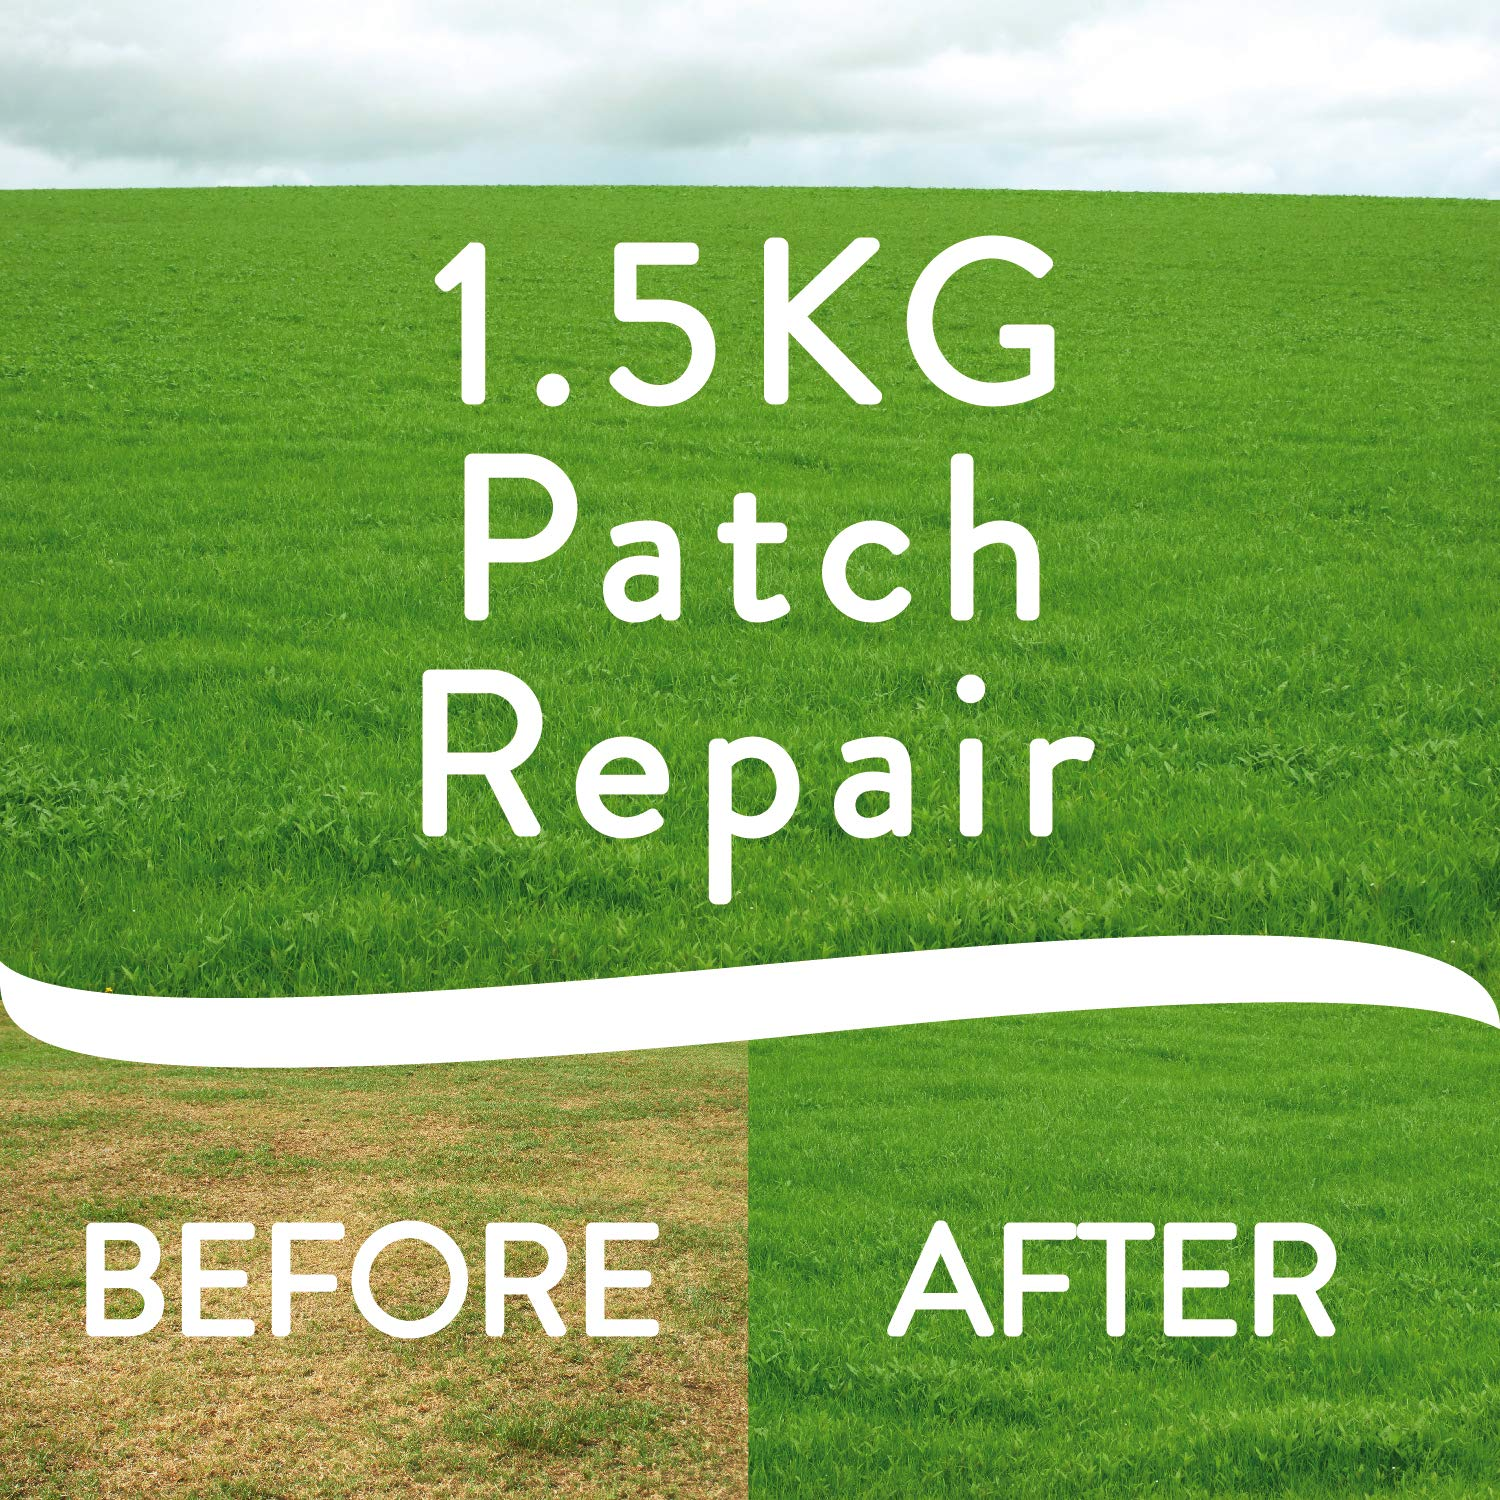 Ultra patch lawn repair grass seed 1. 5kg natural fast growing, dog.